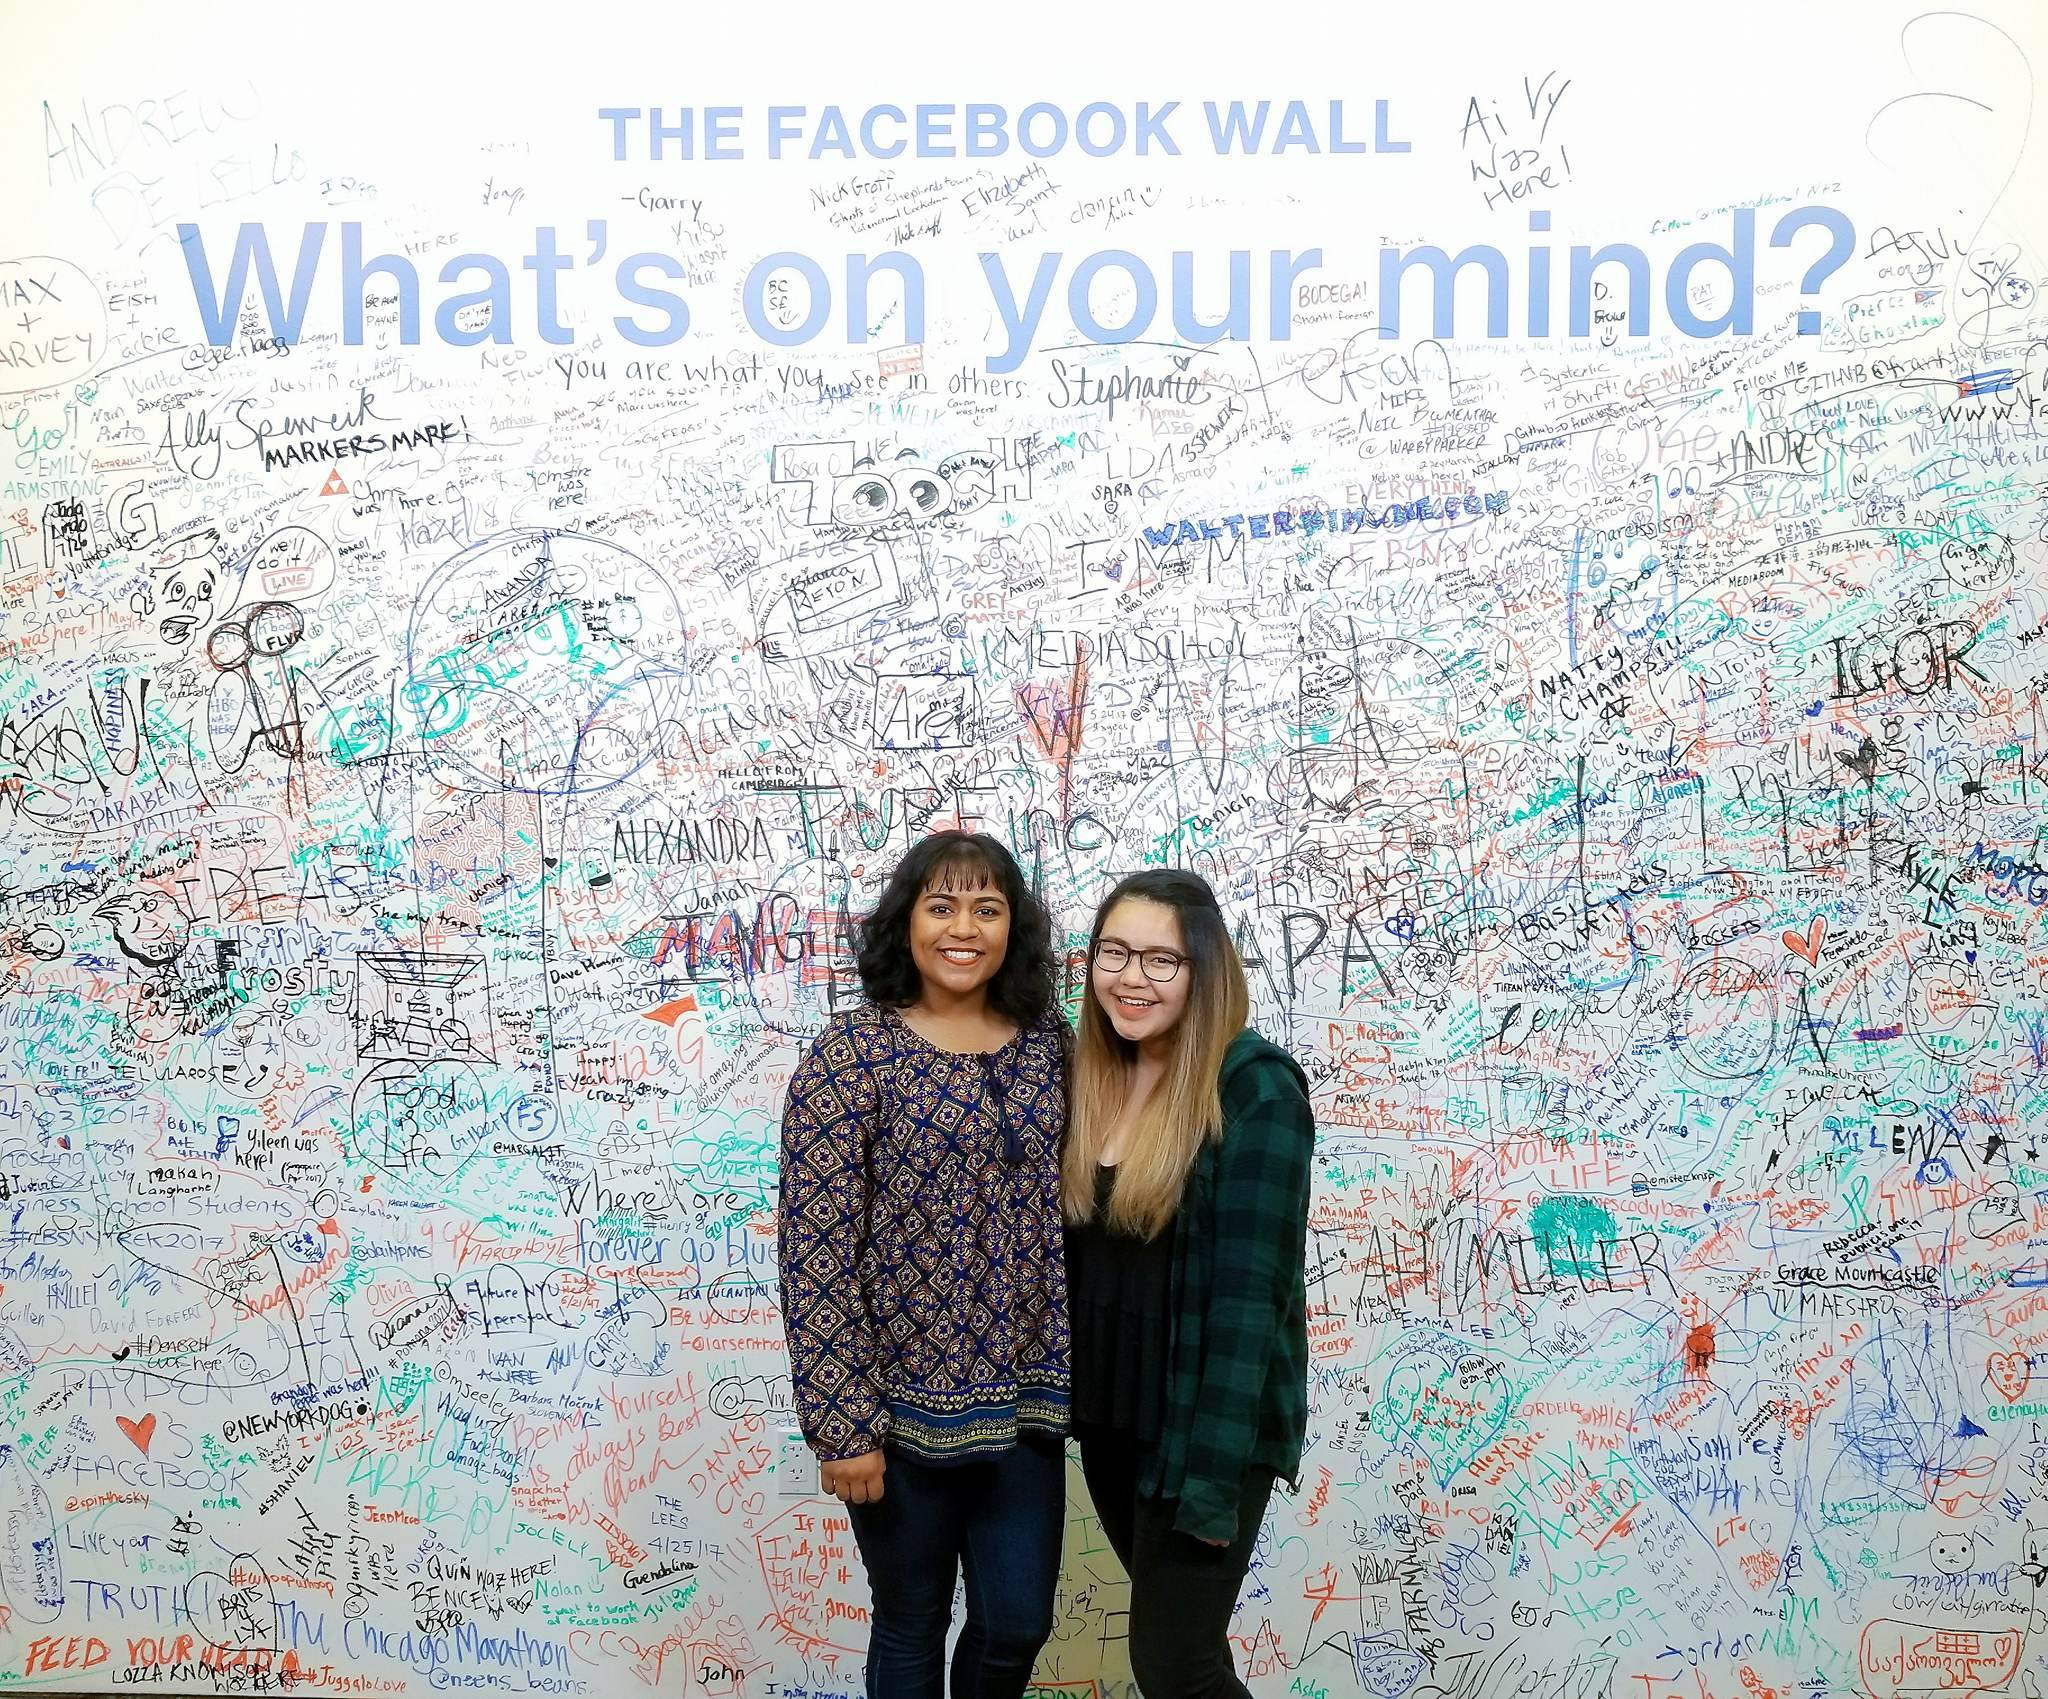 Left our mark on the Facebook NY Wall!